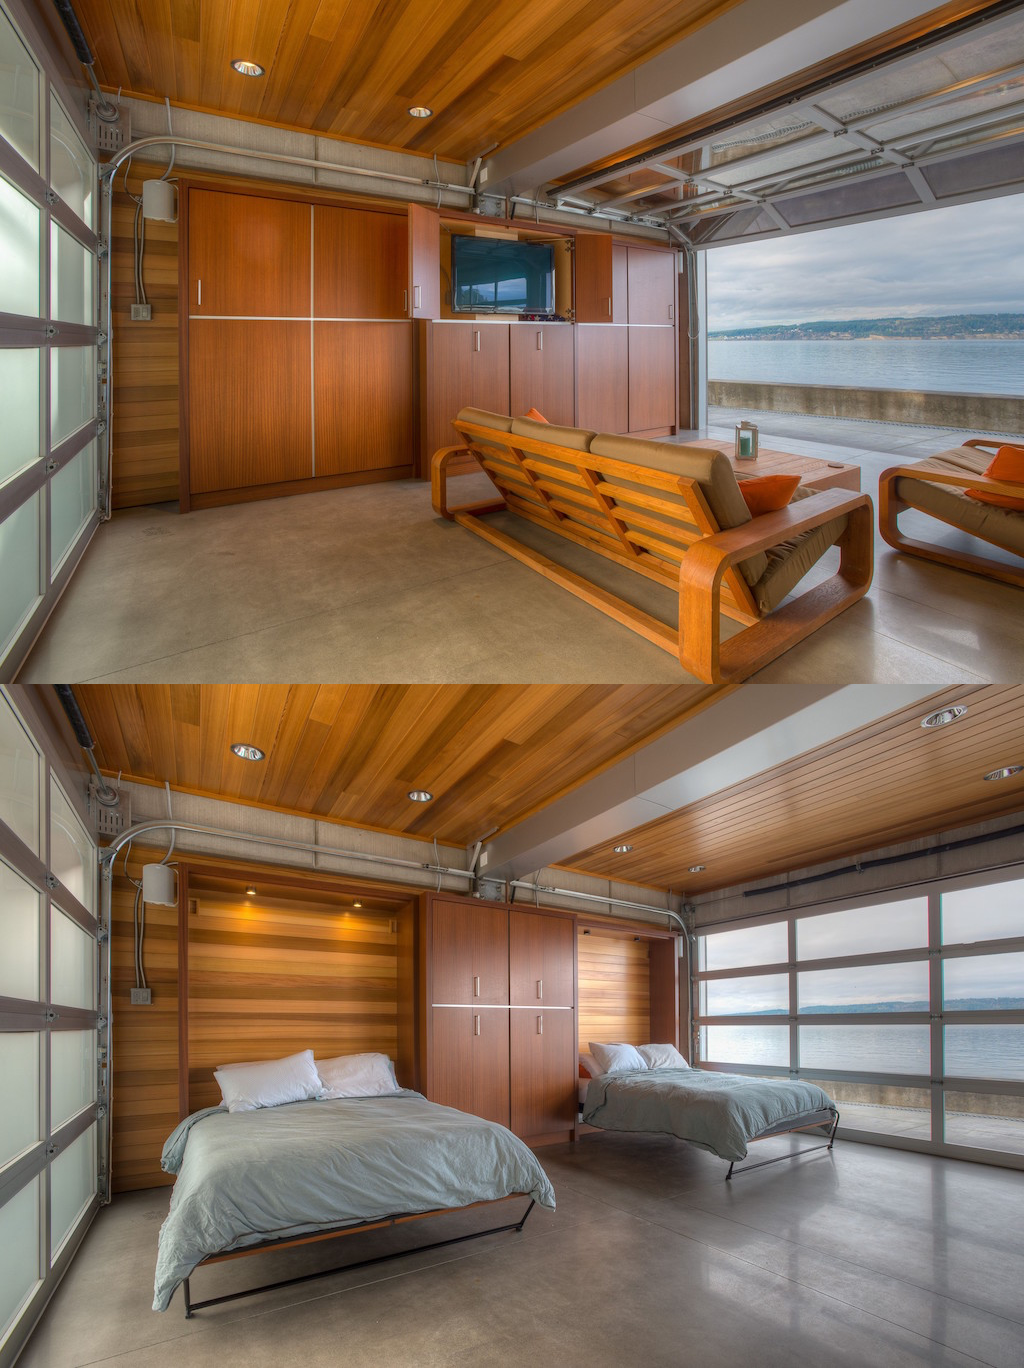 Murphy beds in a garage door walled living room letting out to a murphy beds in a garage door walled living room letting out to a bay rubansaba